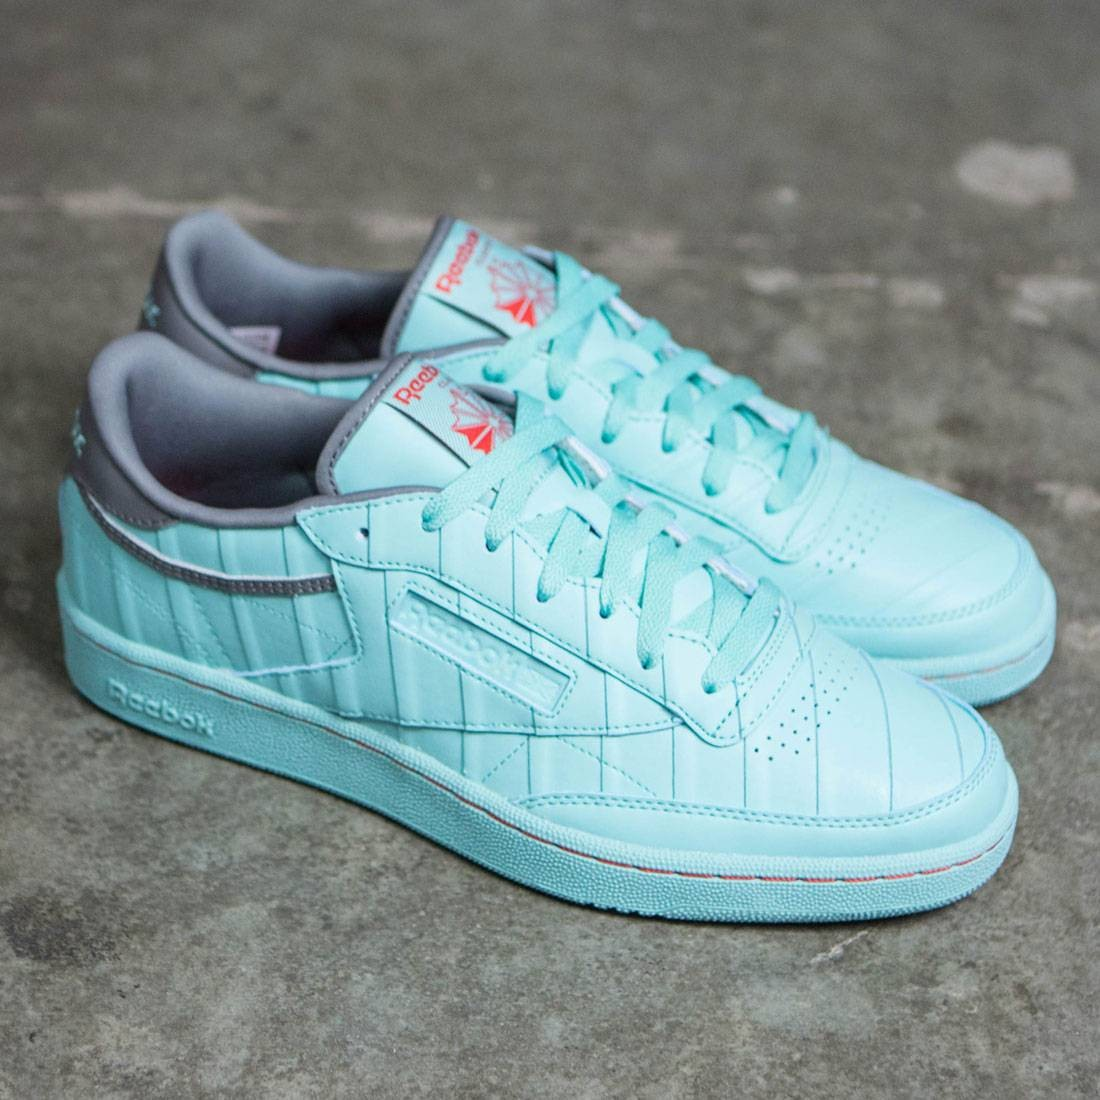 9598788b9 Reebok x Solebox Men Club C 85 - Year Of The Court (teal / aqua vapor /  cyclone gray / techy red)